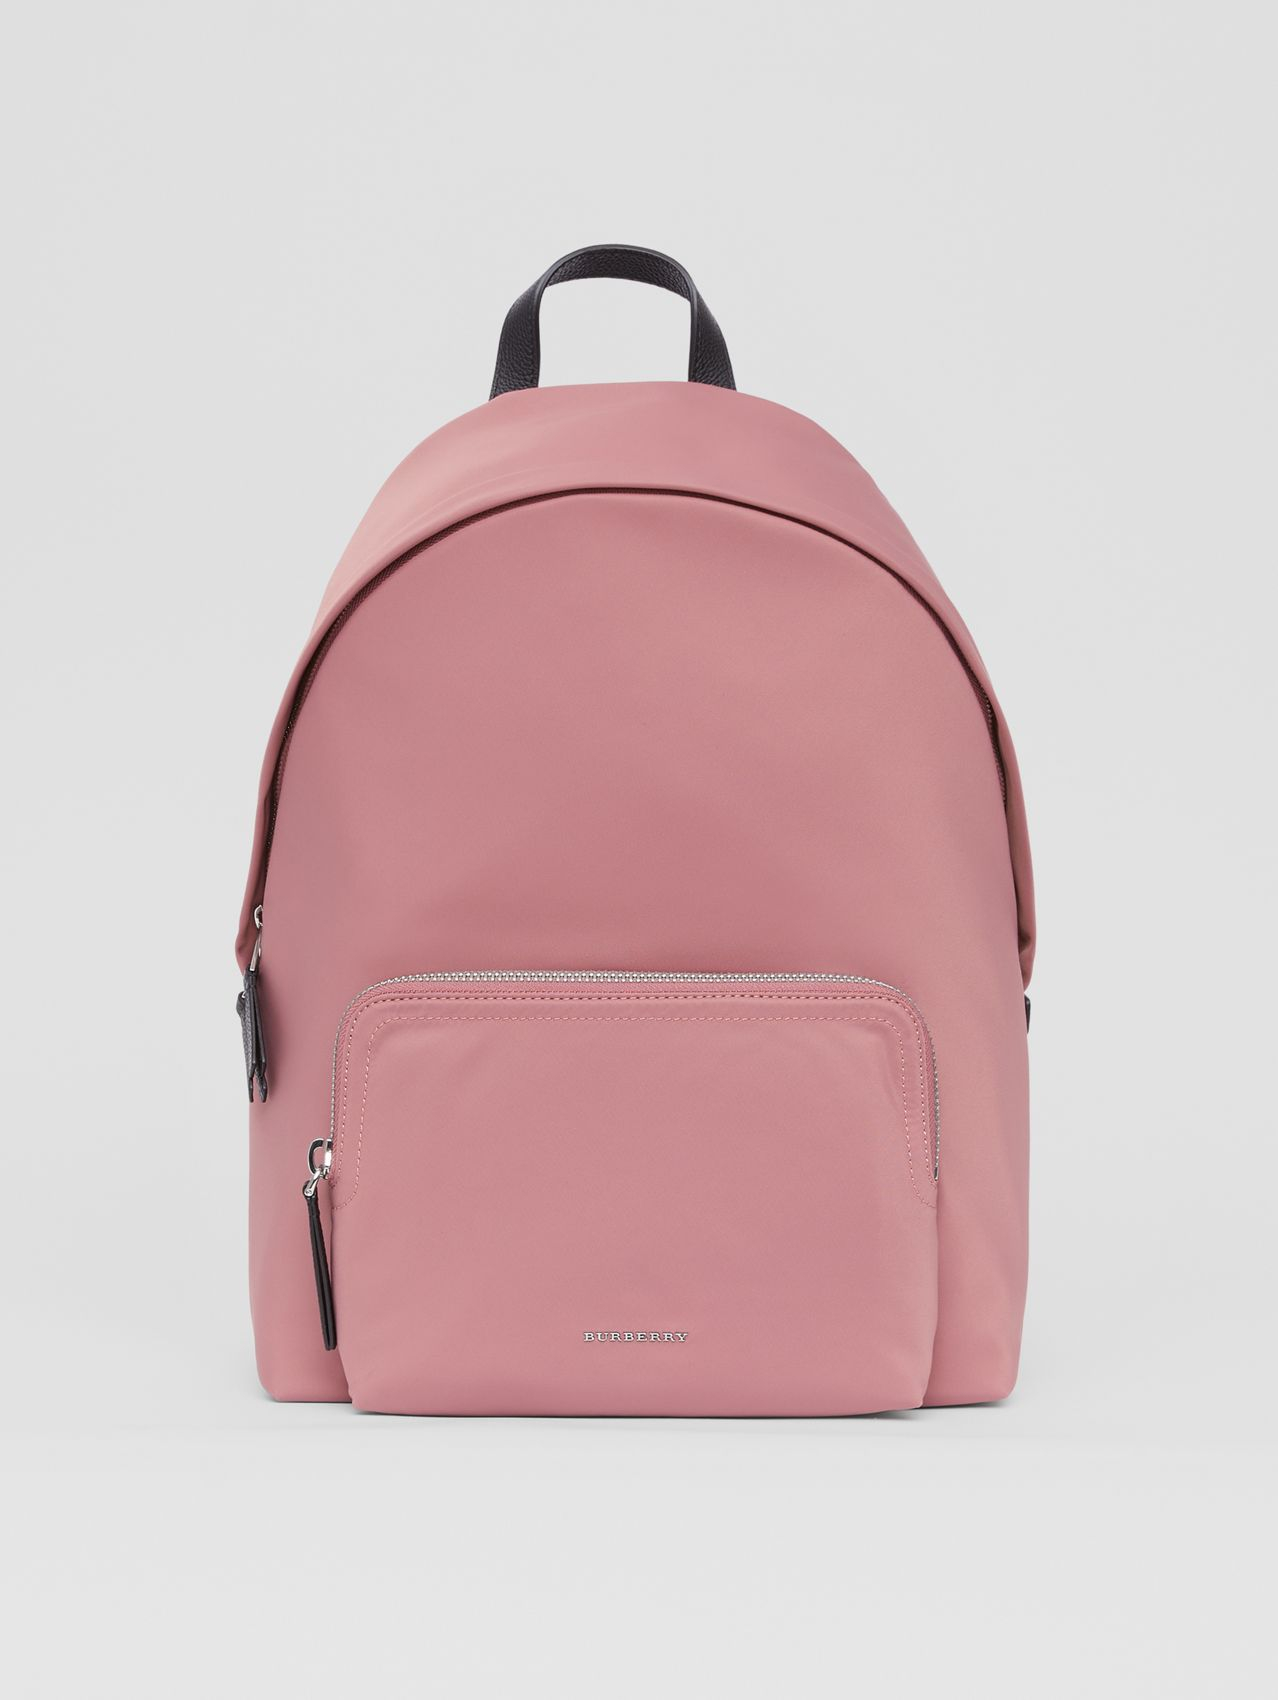 Logo Detail Backpack in Mauve Pink